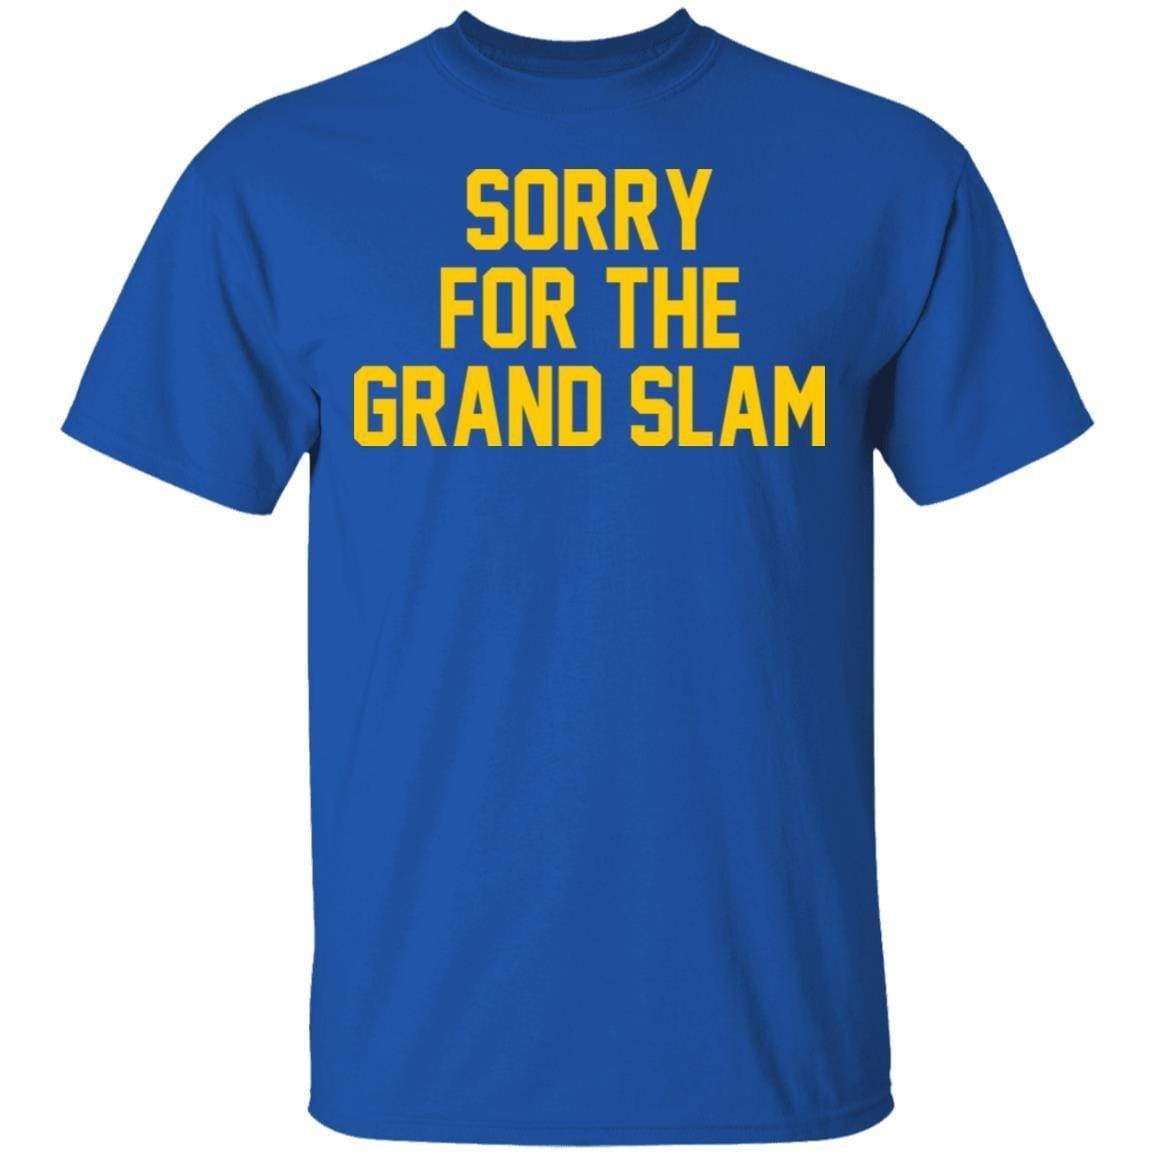 Sorry For The Grand Slam T-Shirts, Hoodies 1049-9971-88445020-48286 - Tee Ript